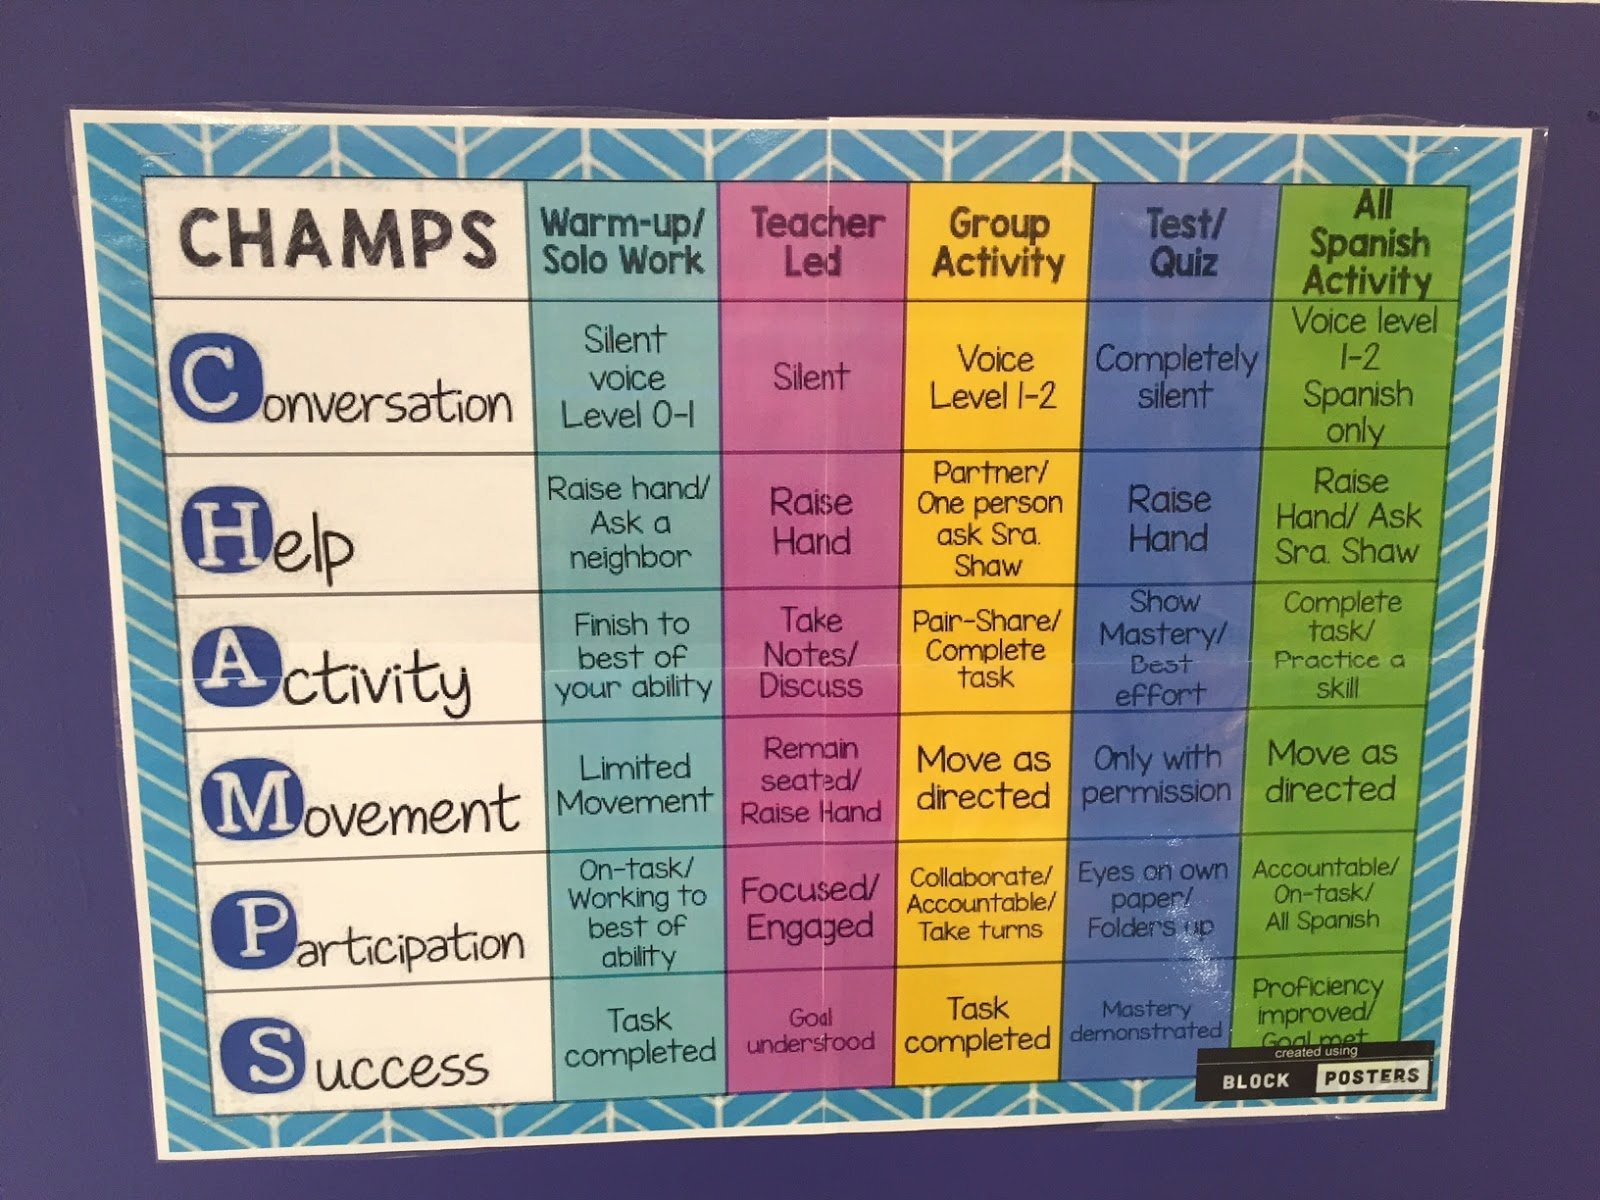 Champs Classroom Management Plan Template Best Of Spanish with Sra Shaw